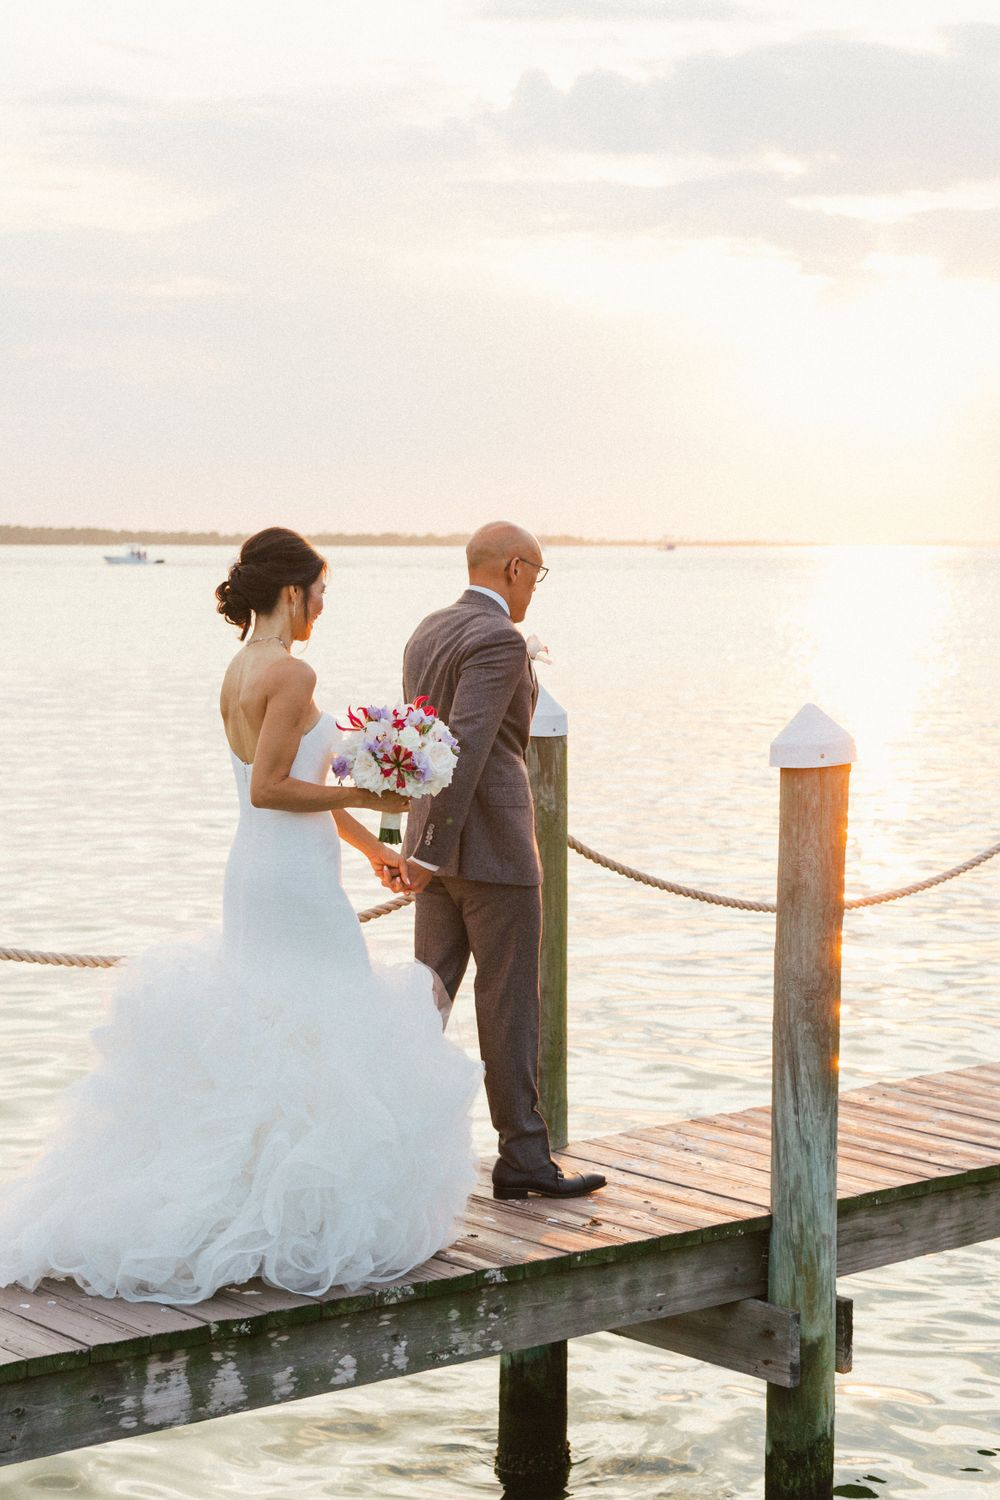 Kacie Q Photography Destin, Florida Wedding